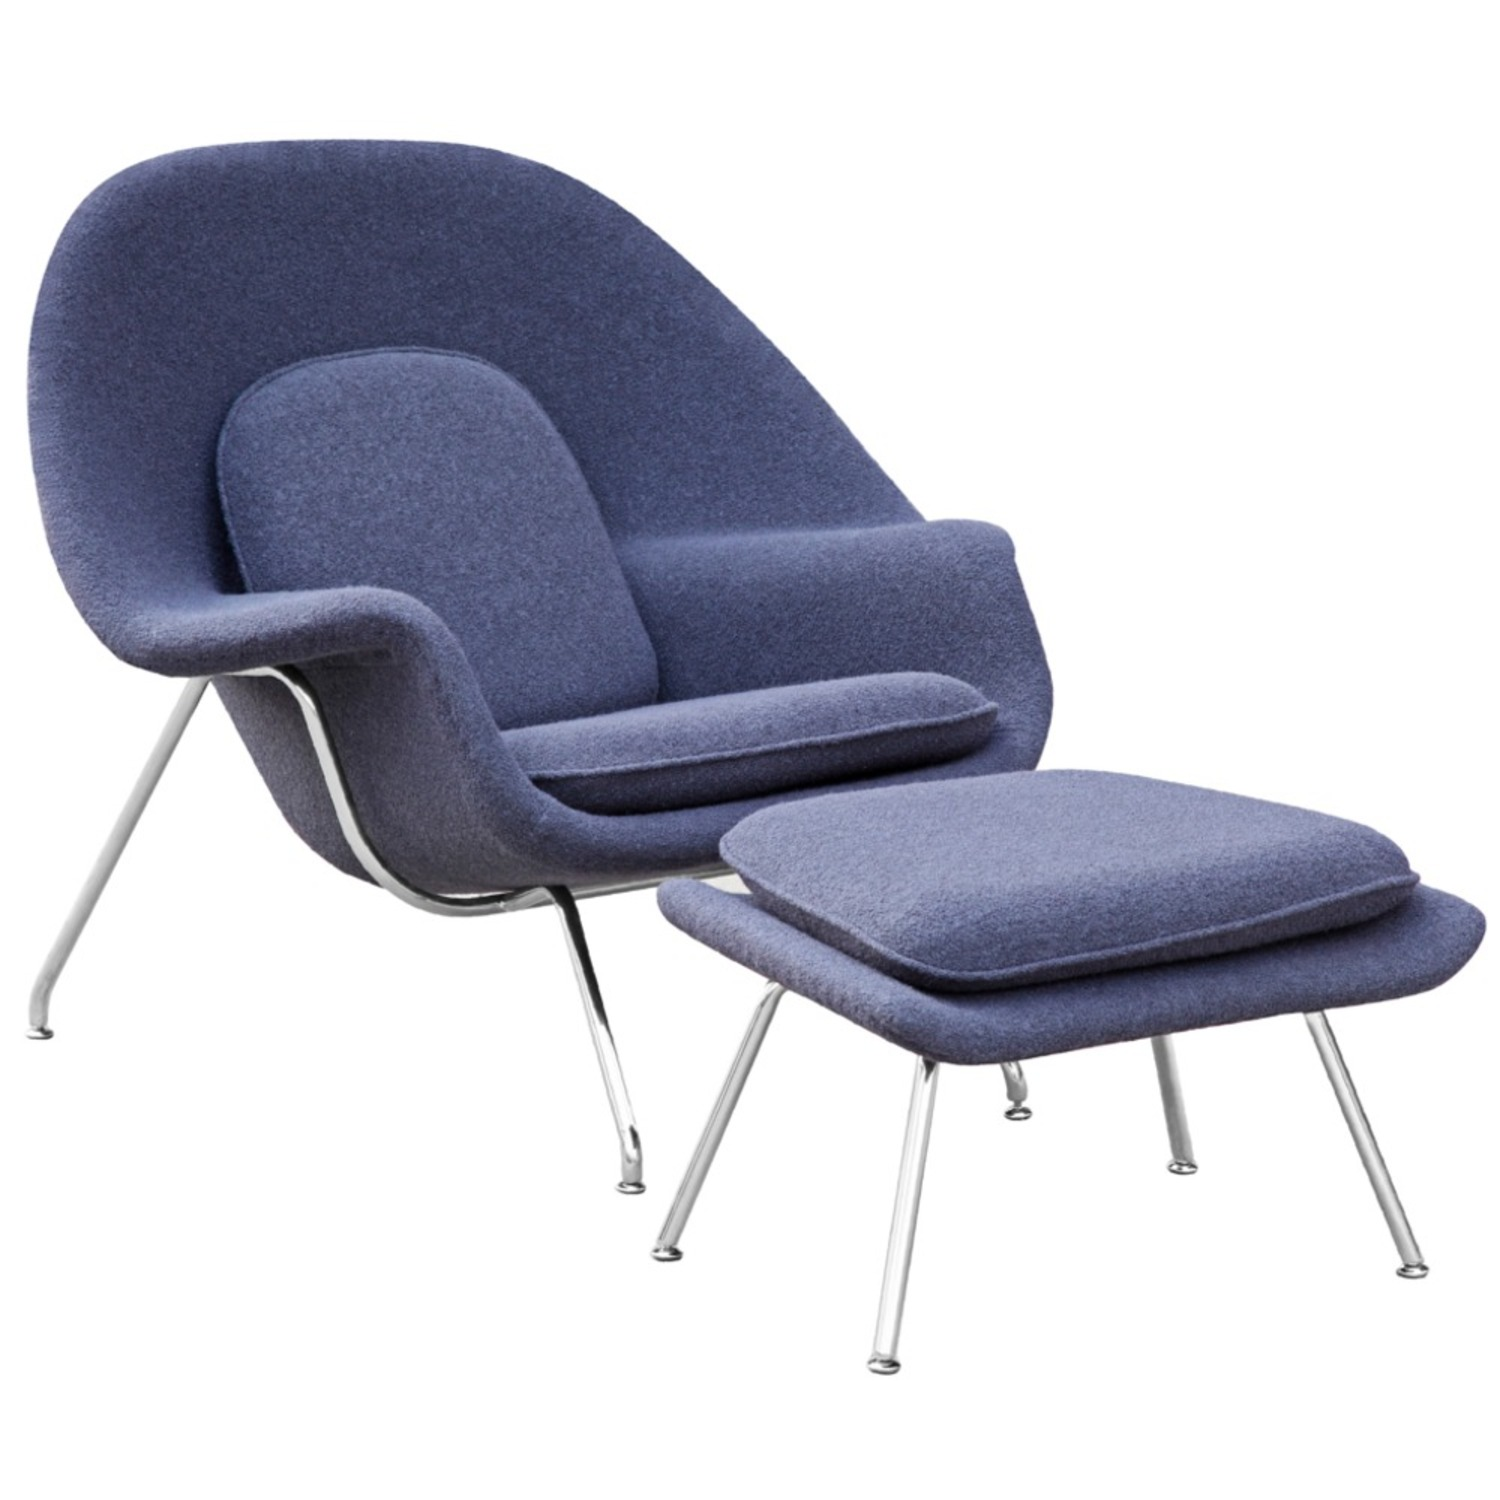 Chair & Ottoman Covered In Gray Wool Fabric - image-0